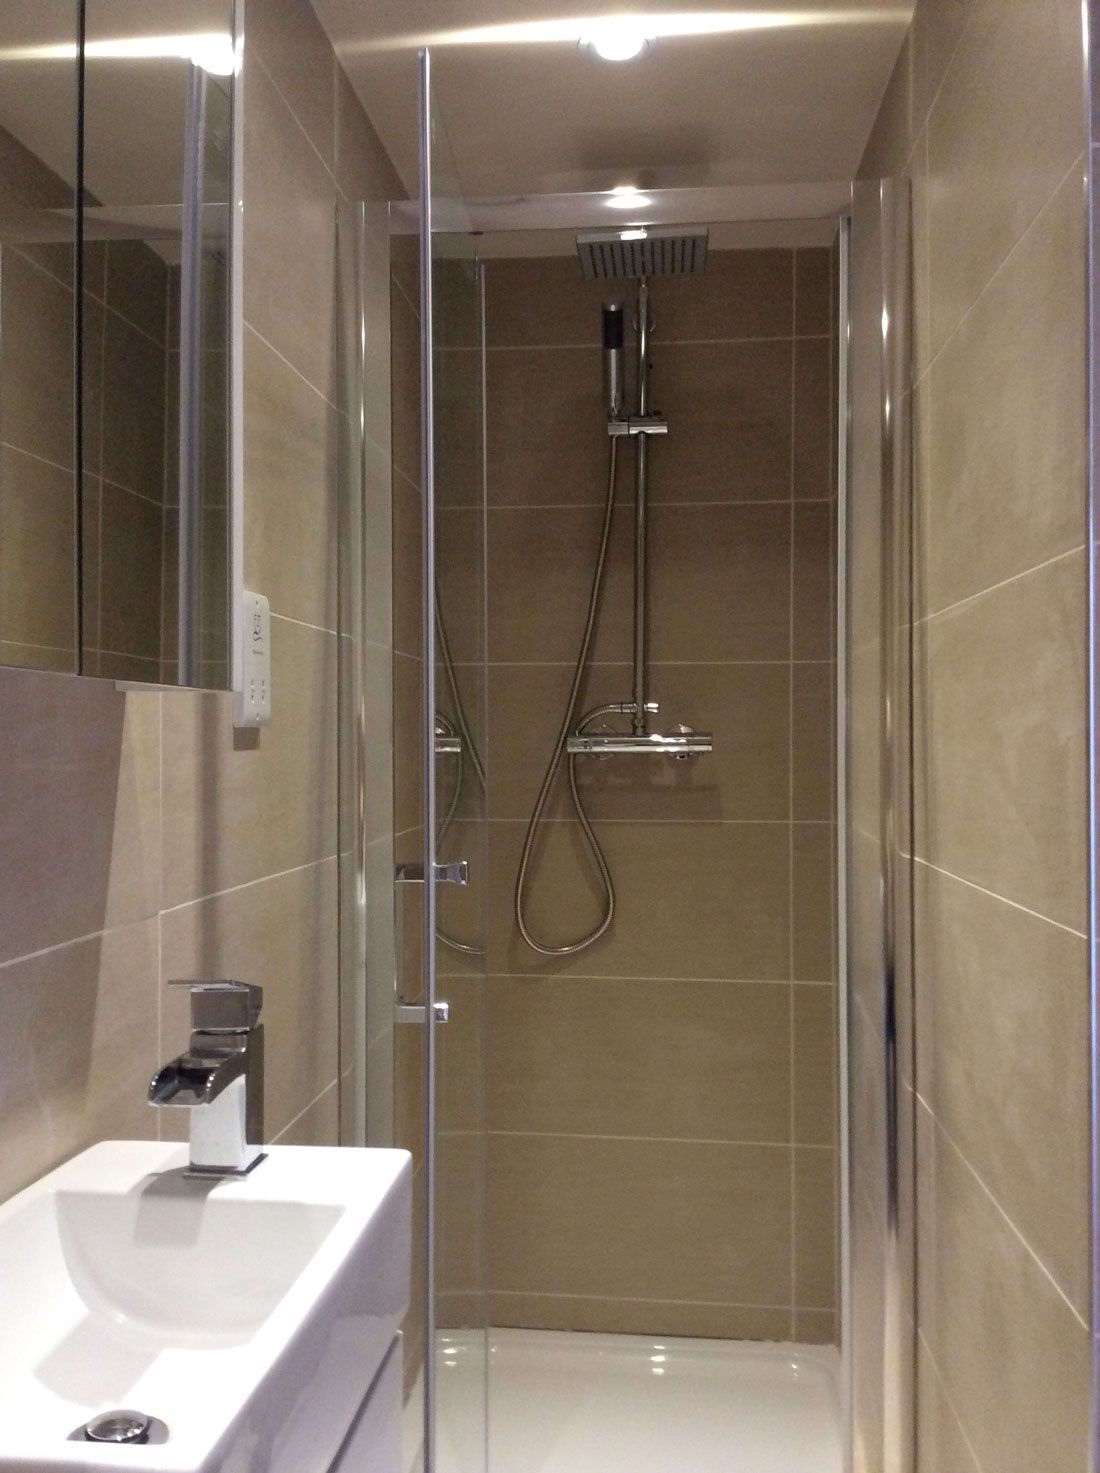 The En Suite Shower Room Is Fully Tiled In Dark Cream Porcelain And Features A Wet Room Shower